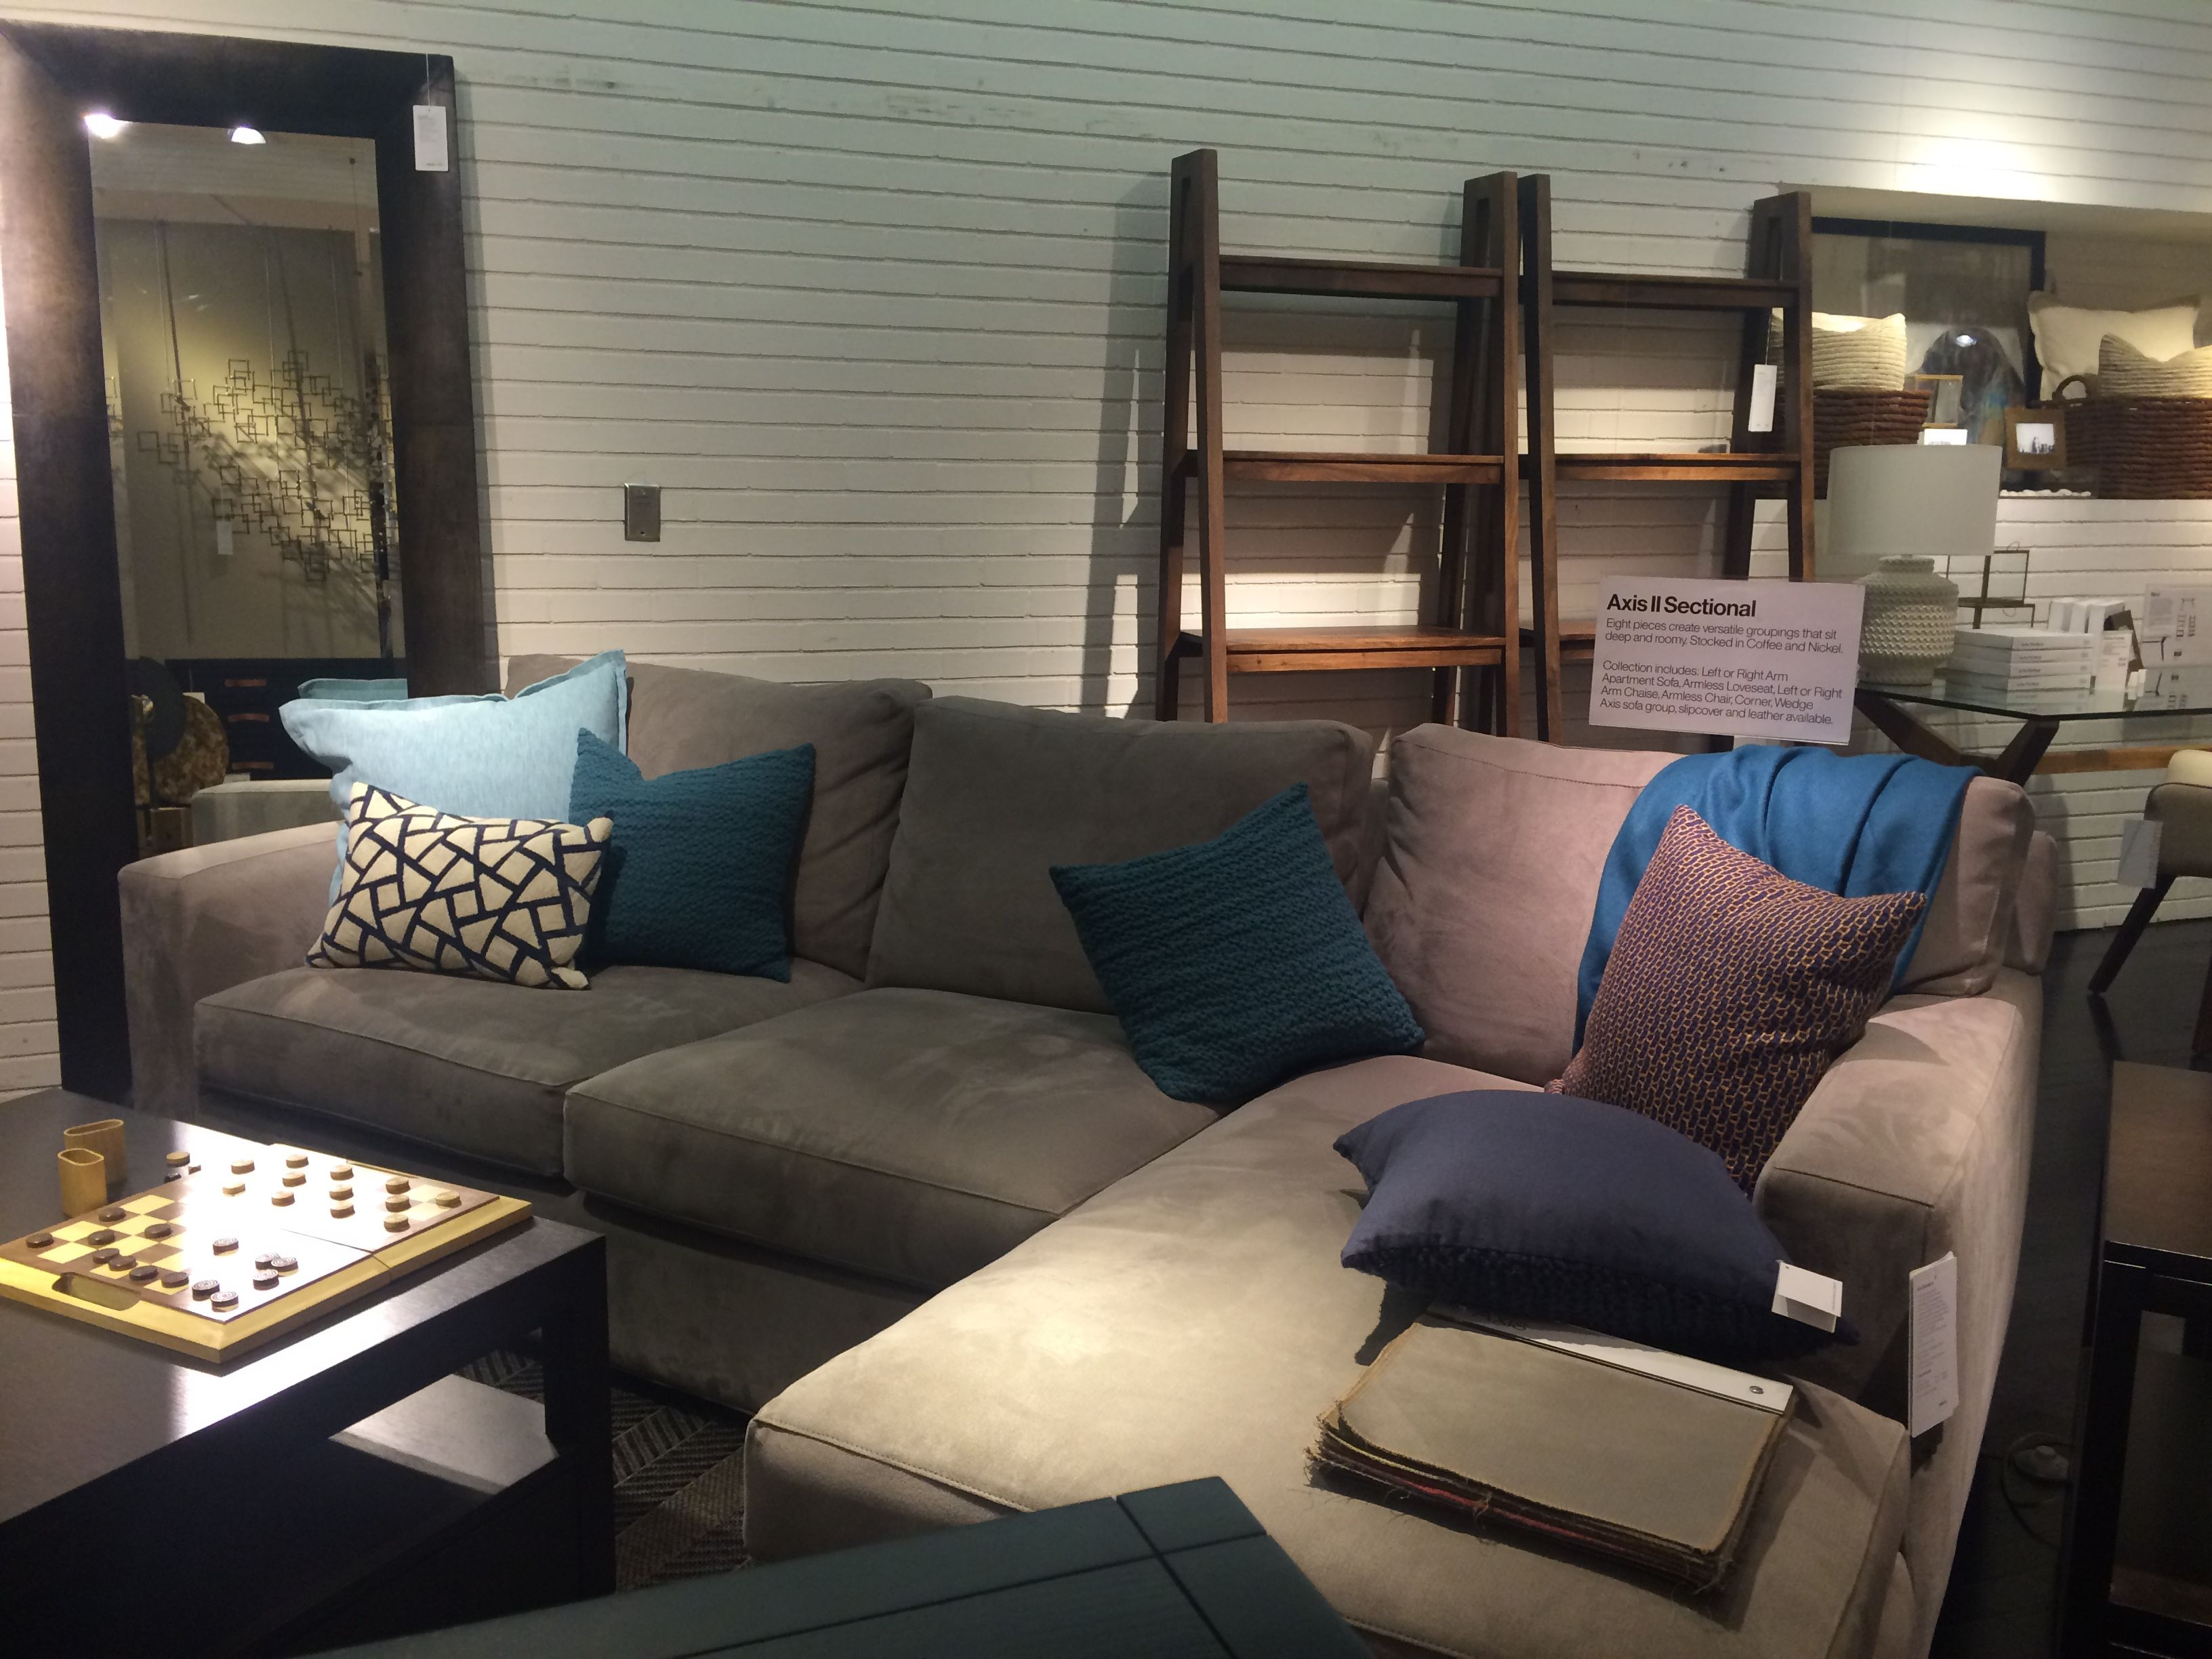 Crate And Barrel Axis Ii Sectional 2698 Sectional Sectional